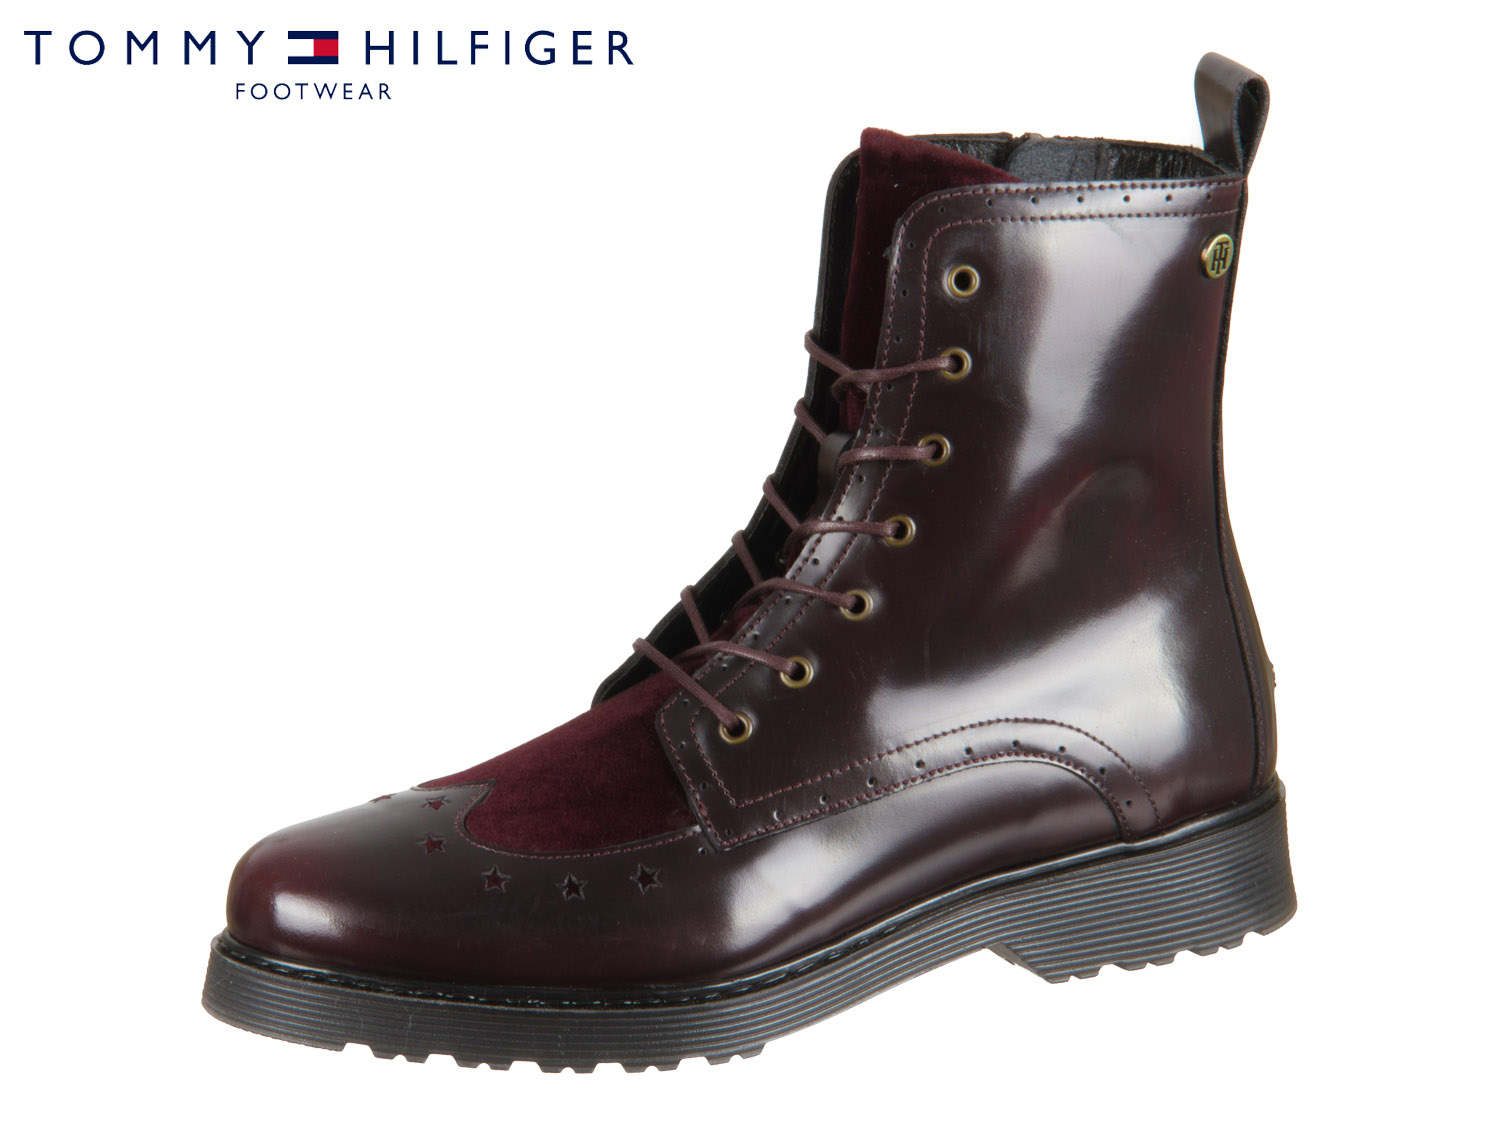 new product 906f1 be72e Tommy Hilfiger Modern Leather Lace Up Boot FW0FW03587-296 decadent chocolate